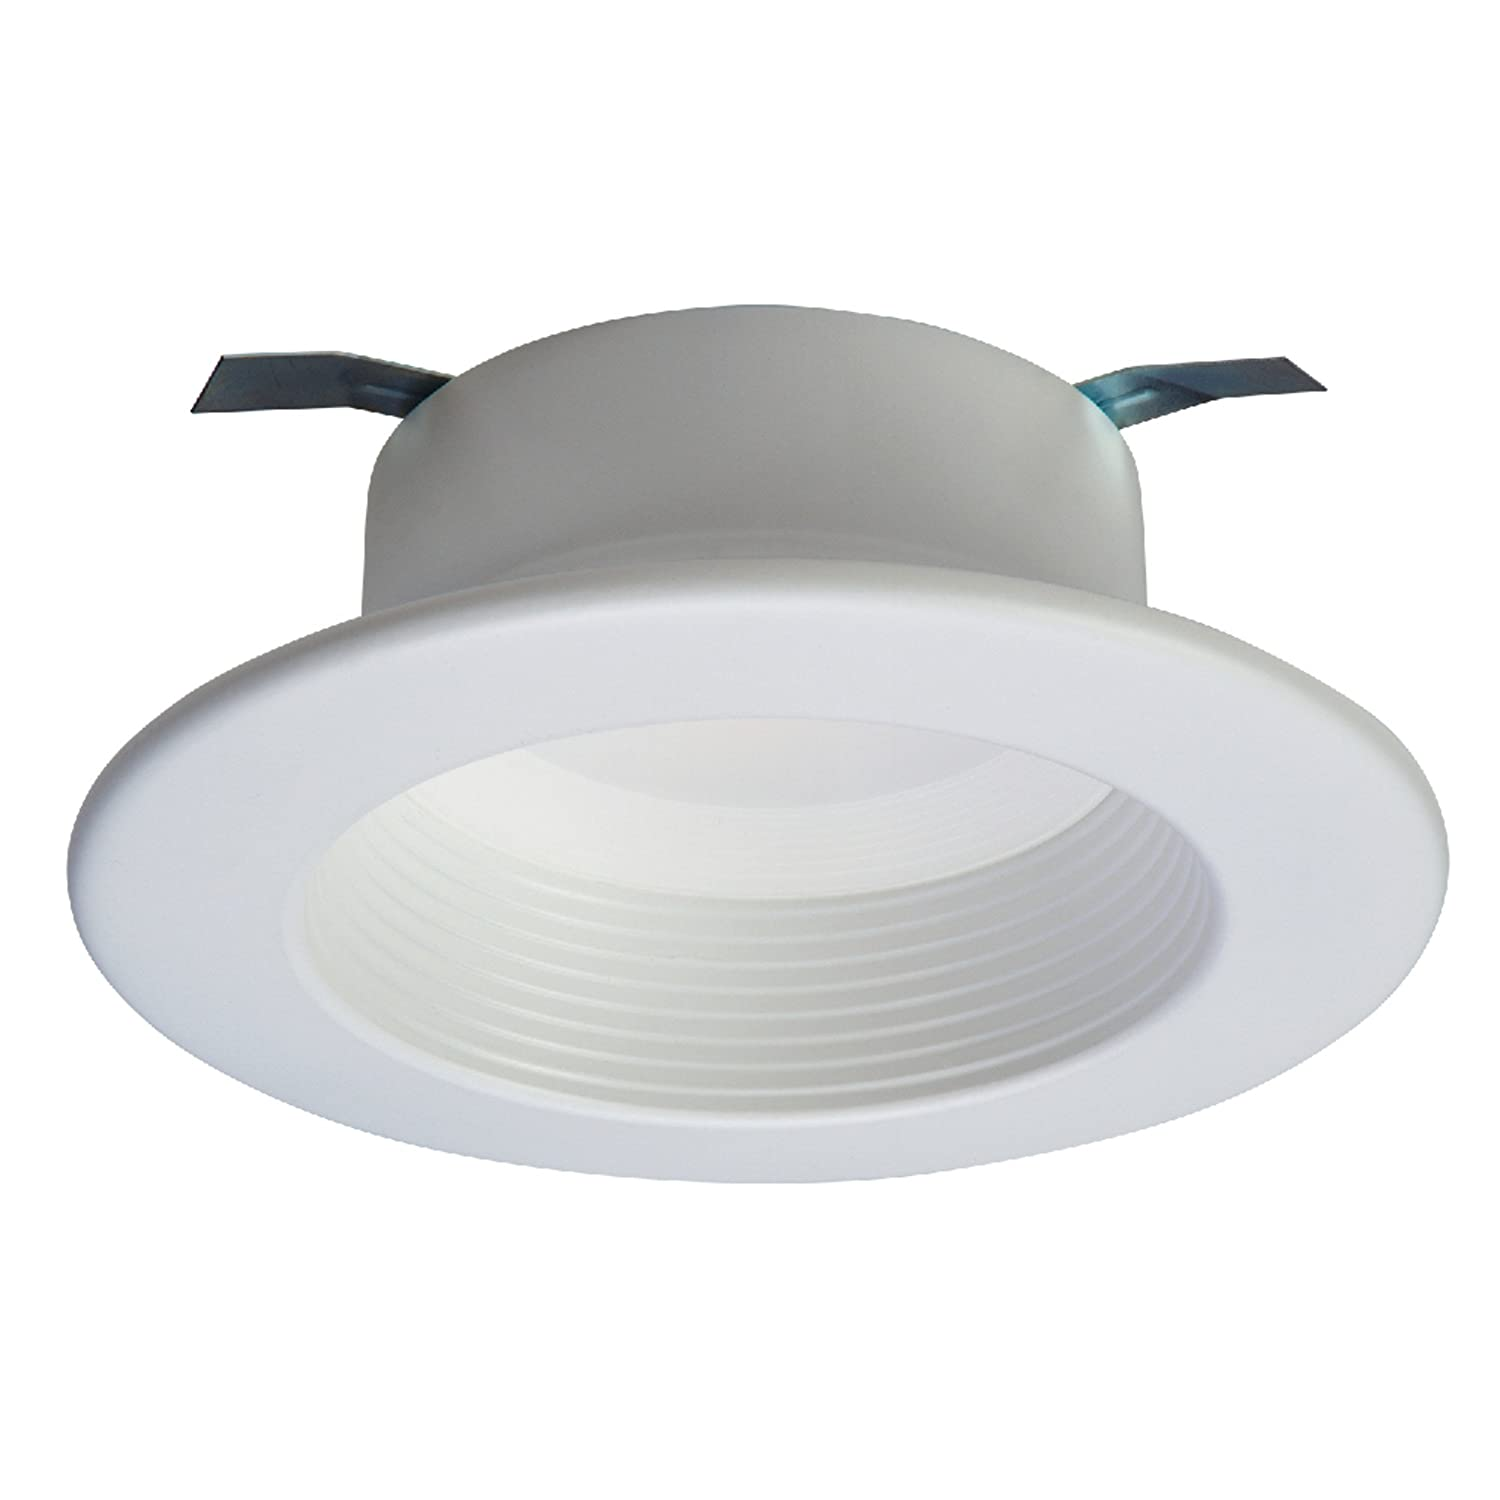 Recessed Lighting HALO RL4069BLE40AWH Smart Bluetooth LED Recessed Light, White - - Amazon.com